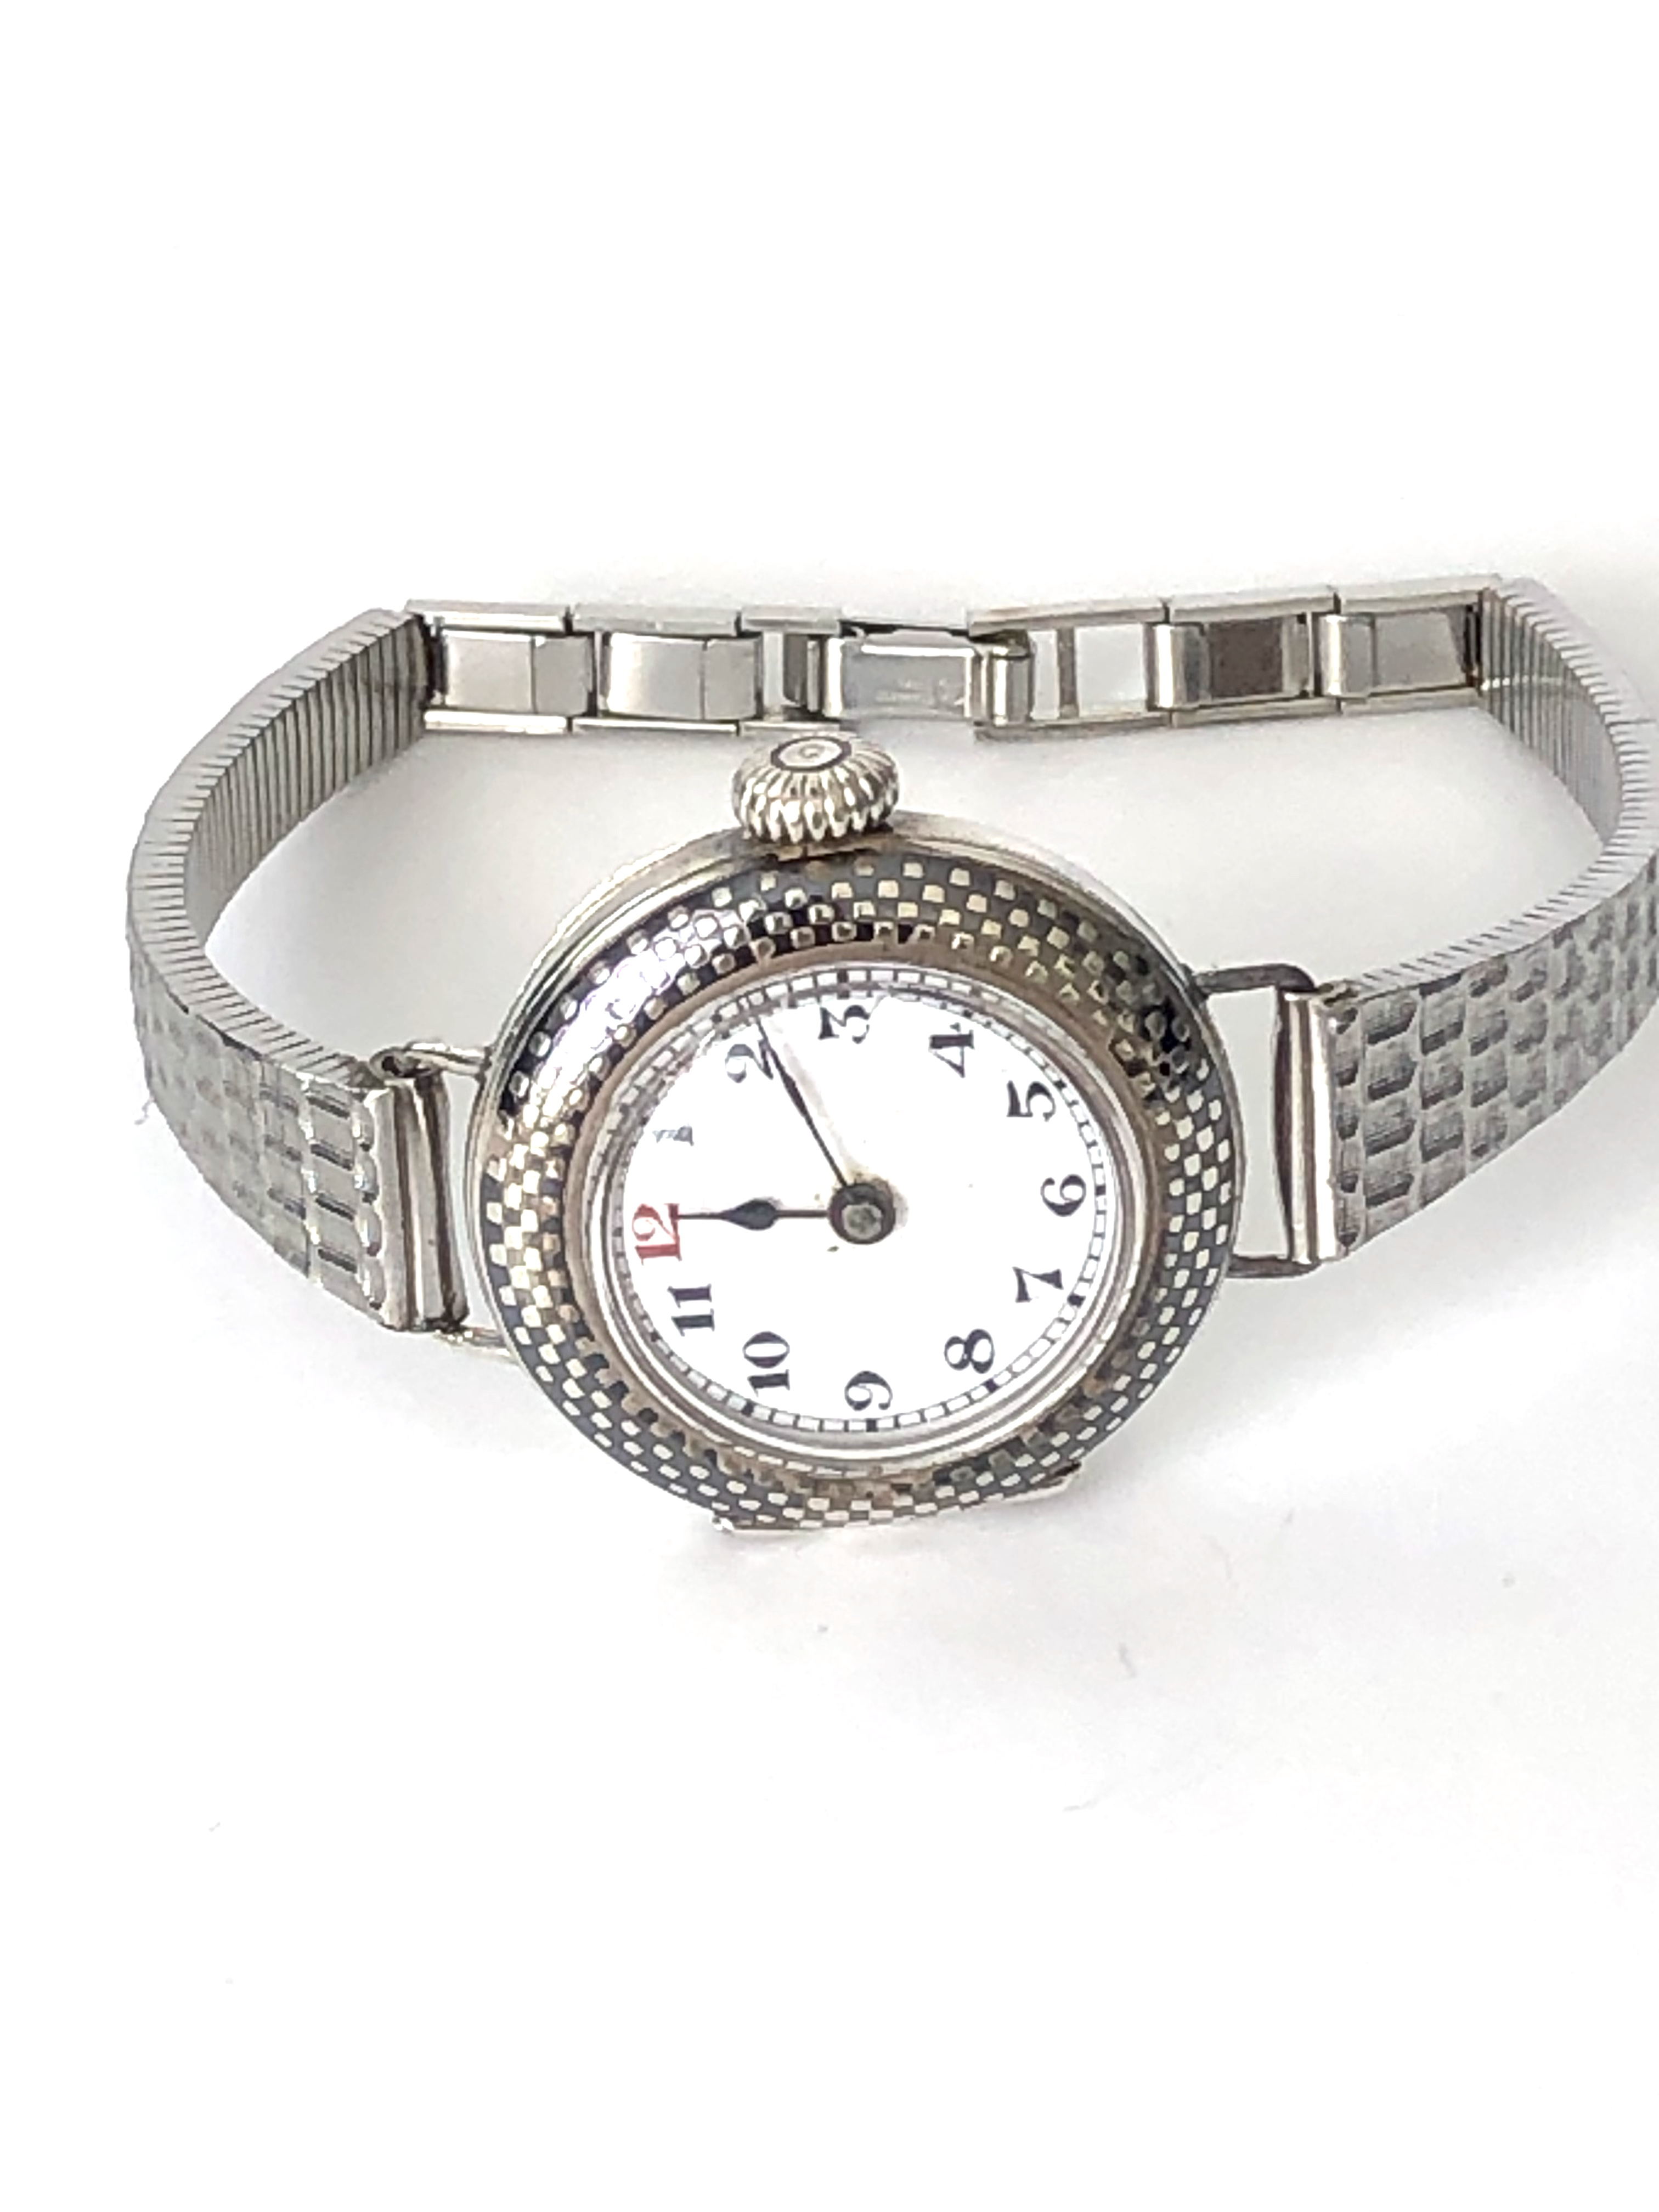 Lot 24 - Stunning and rare Vintage Ladies Rolex watch with 21K White Gold case